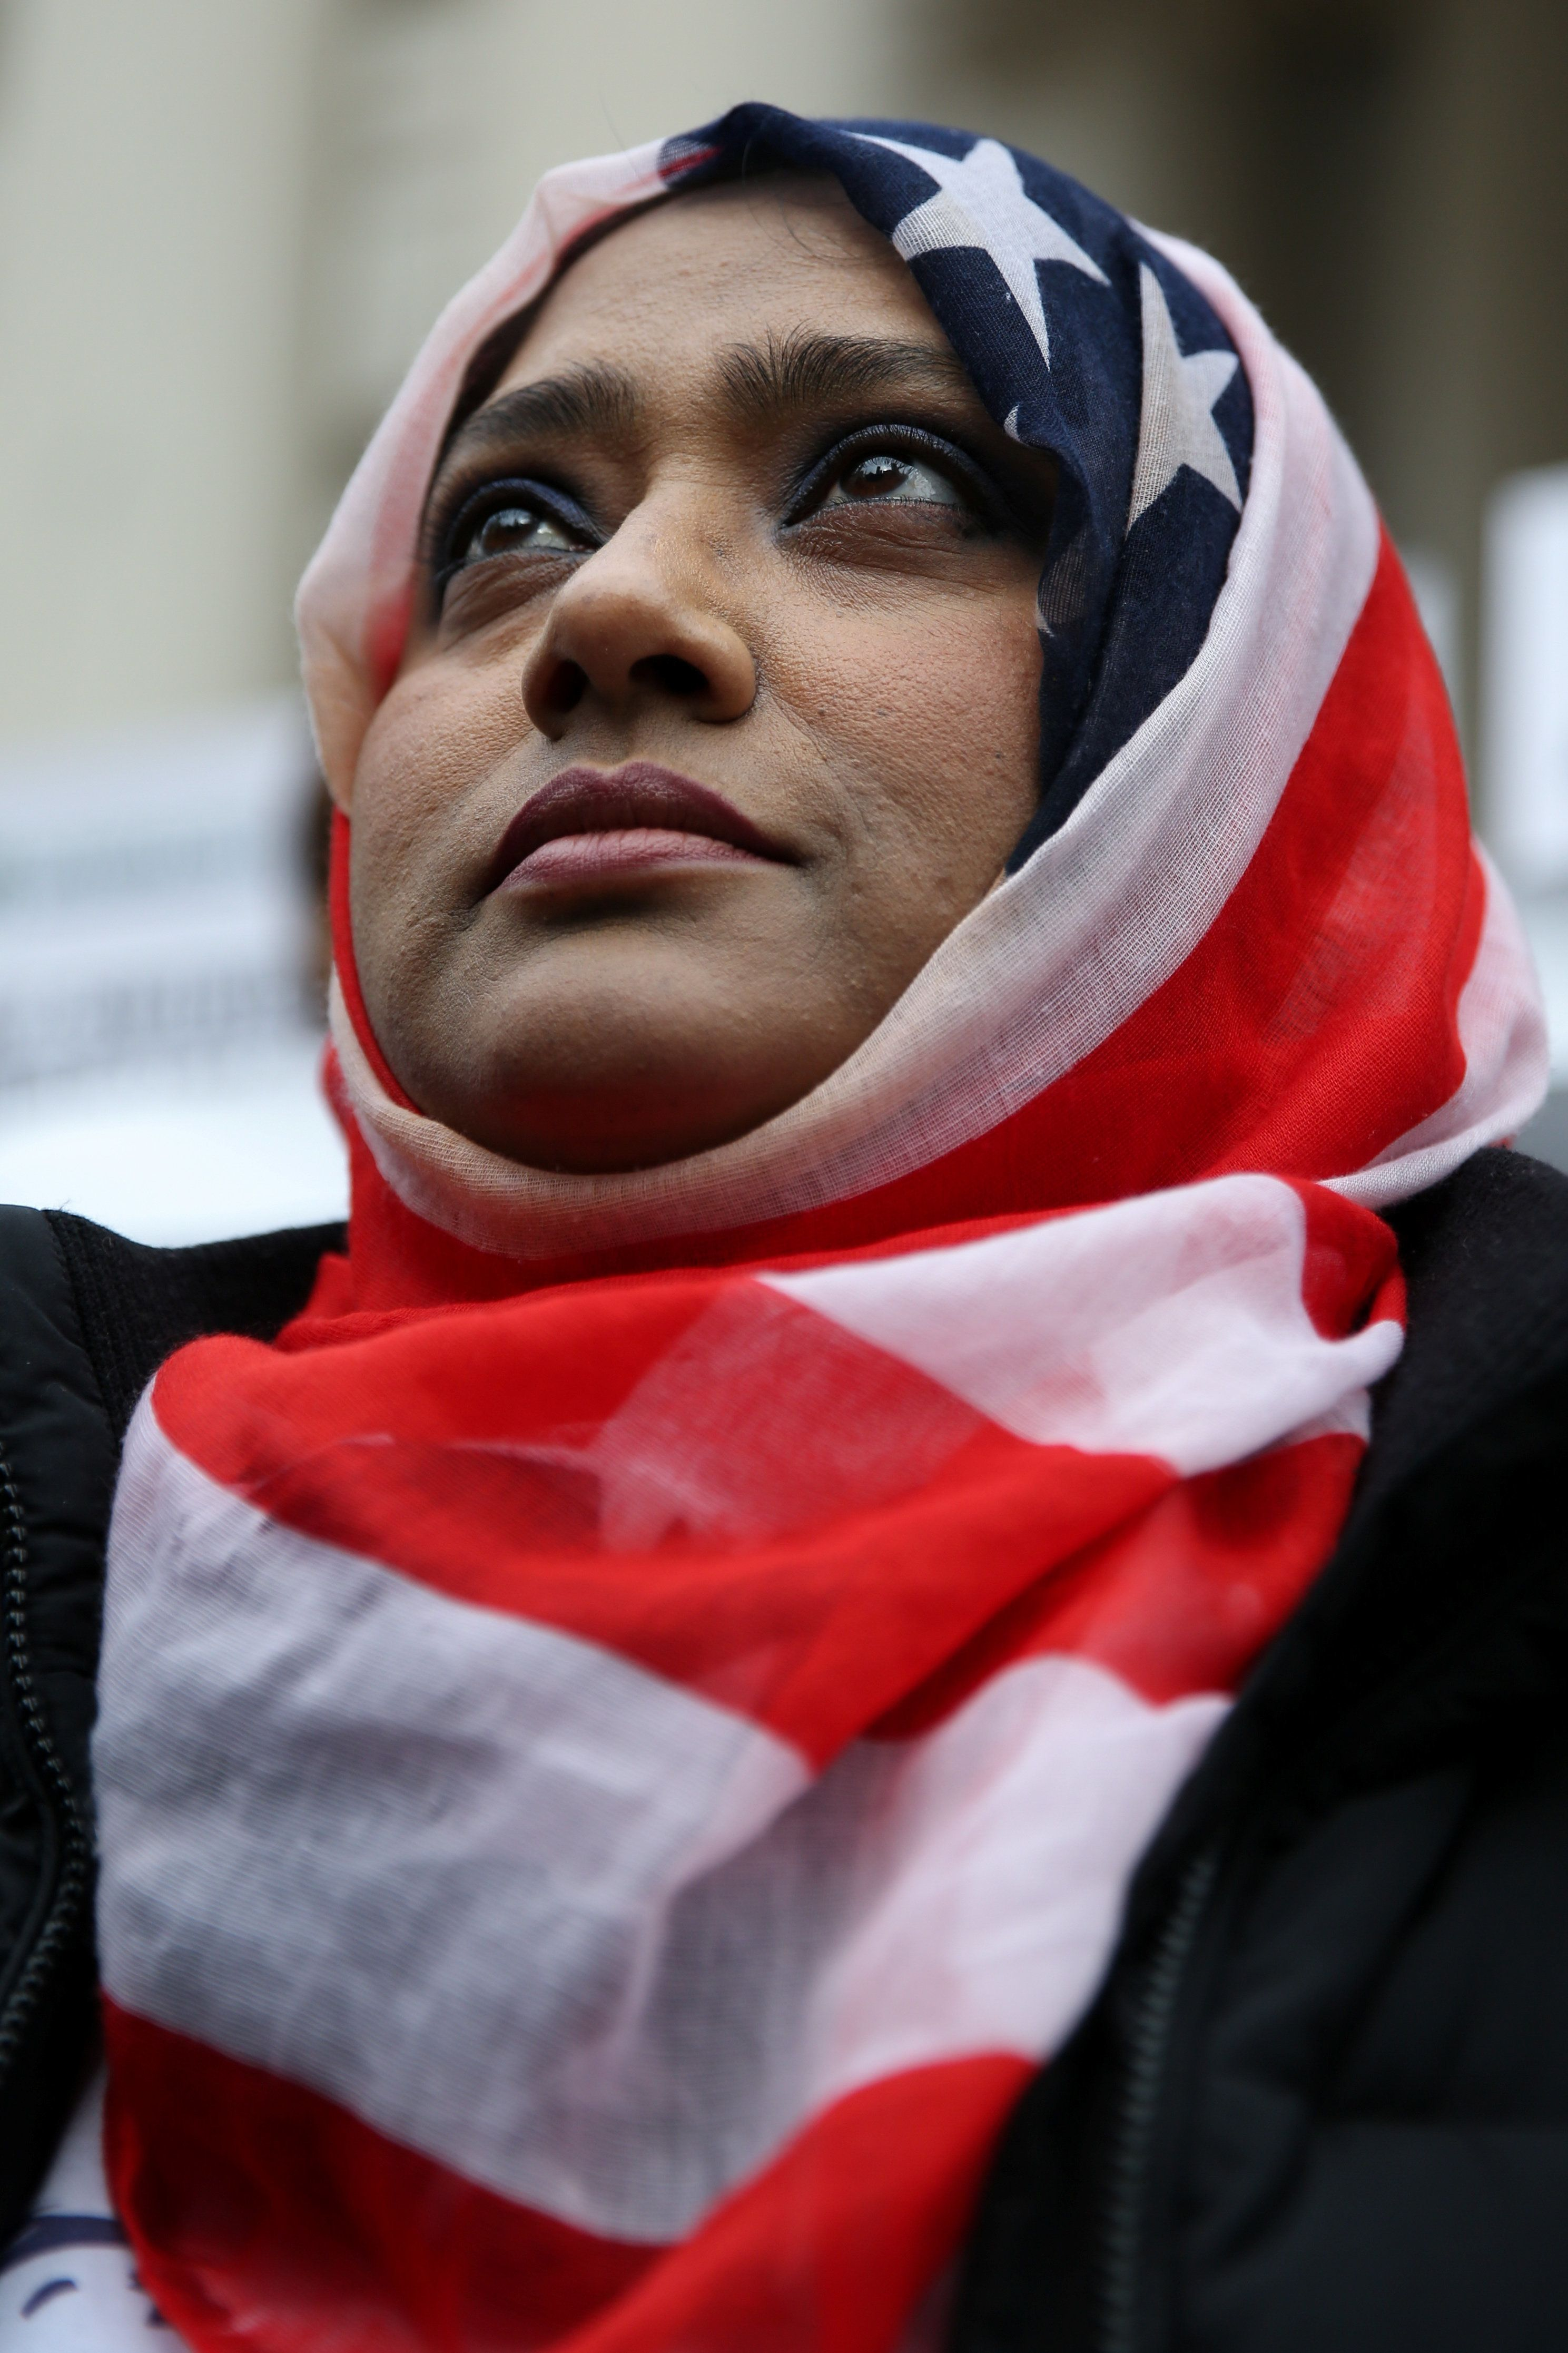 Hoshneara Begum takes part in a World Hijab Day rally held in front of New York City Hall in New York on Feb. 1.